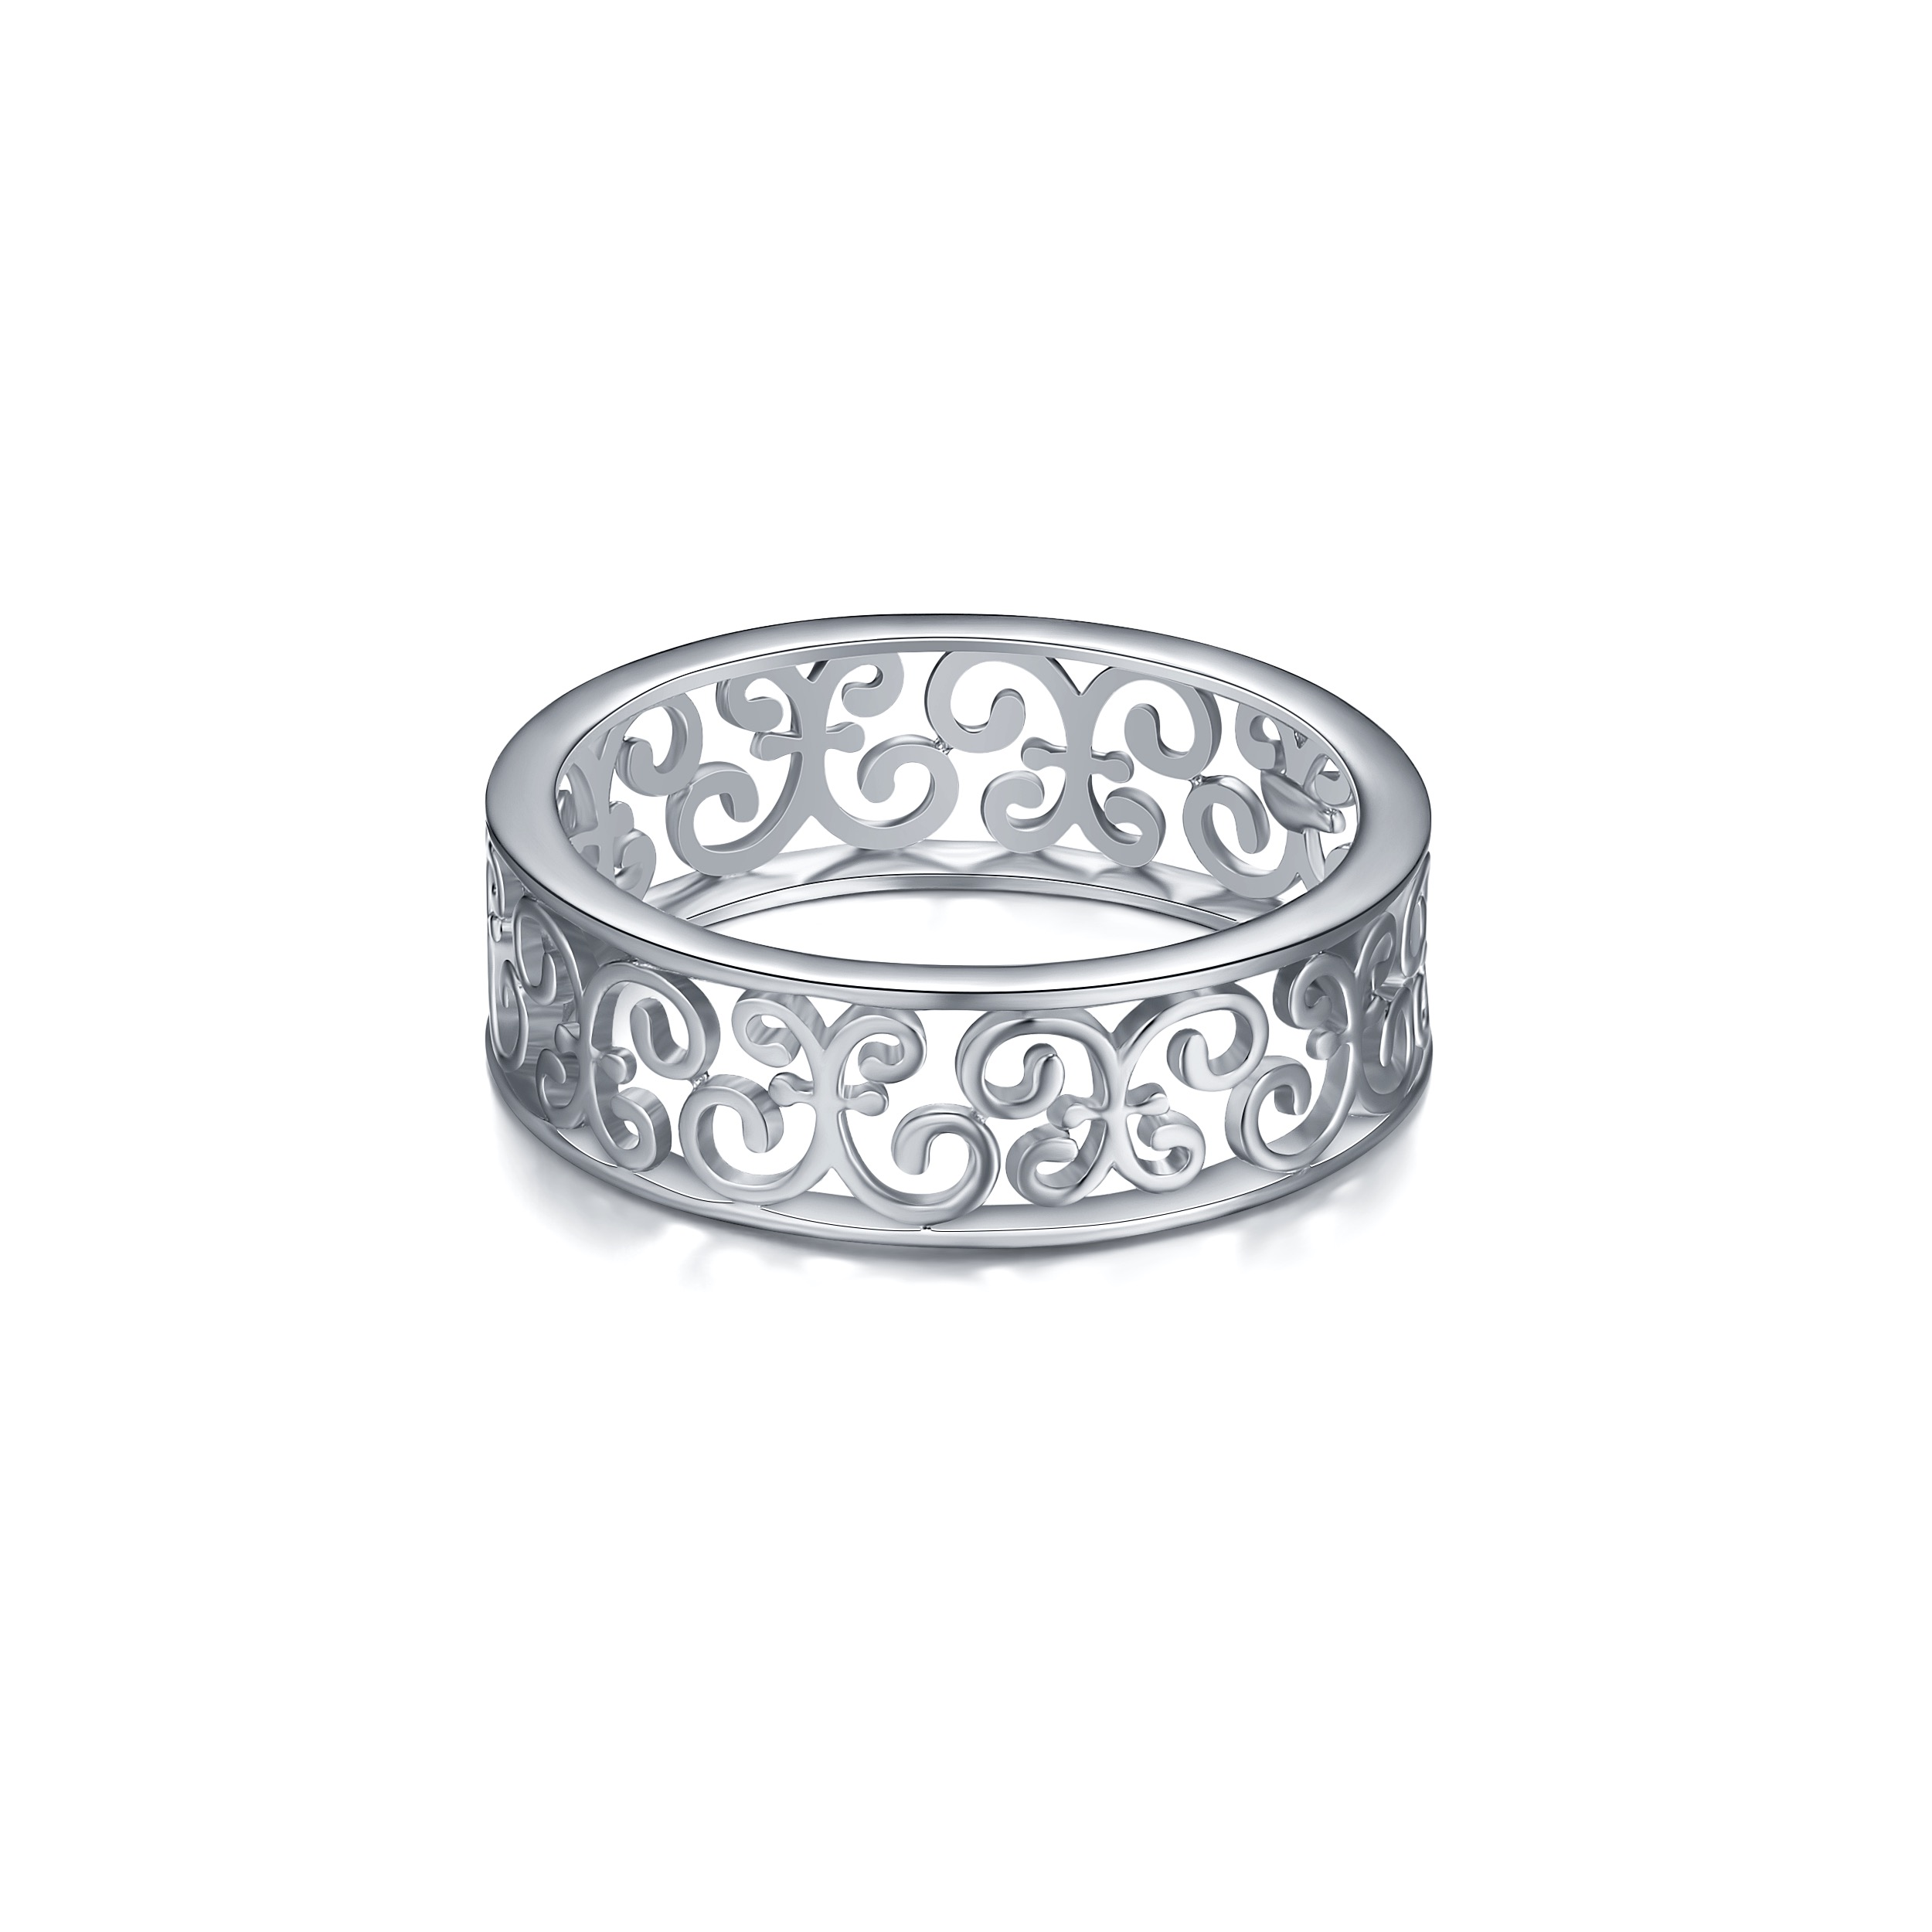 17a1e68feae4e Filigree Band Ring in Sterling Silver Rhodium Plated